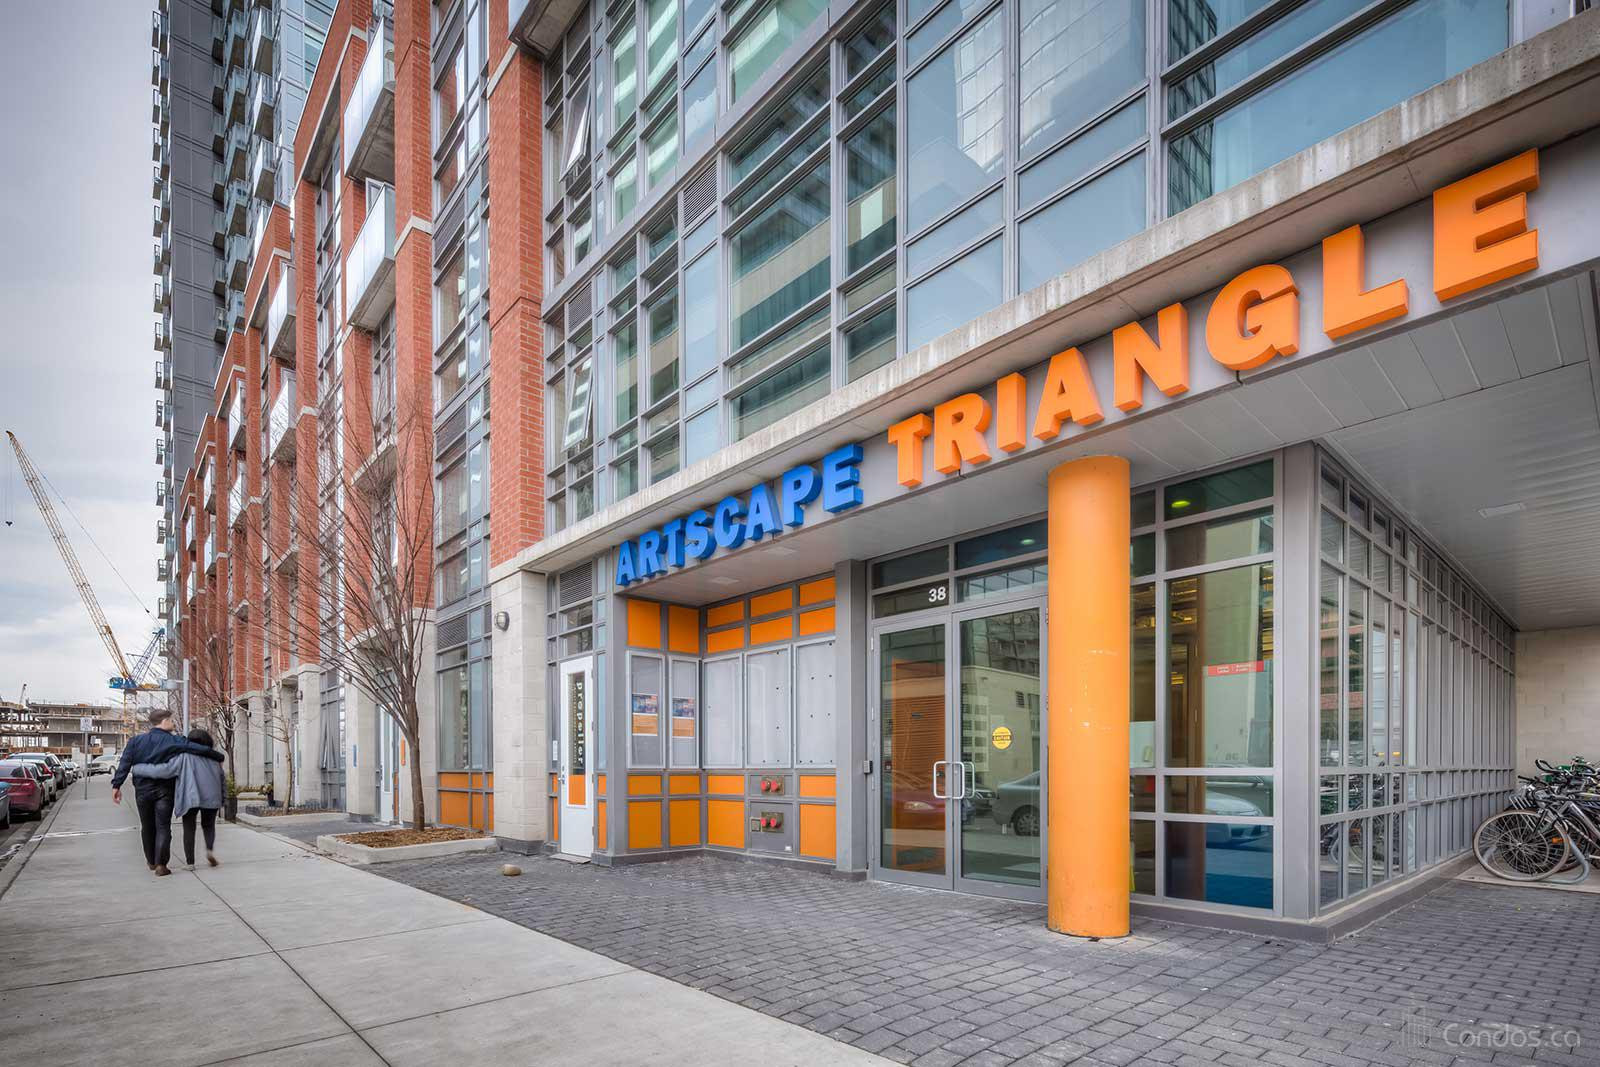 Artscape Triangle Lofts at 32 Abell St, Toronto 0